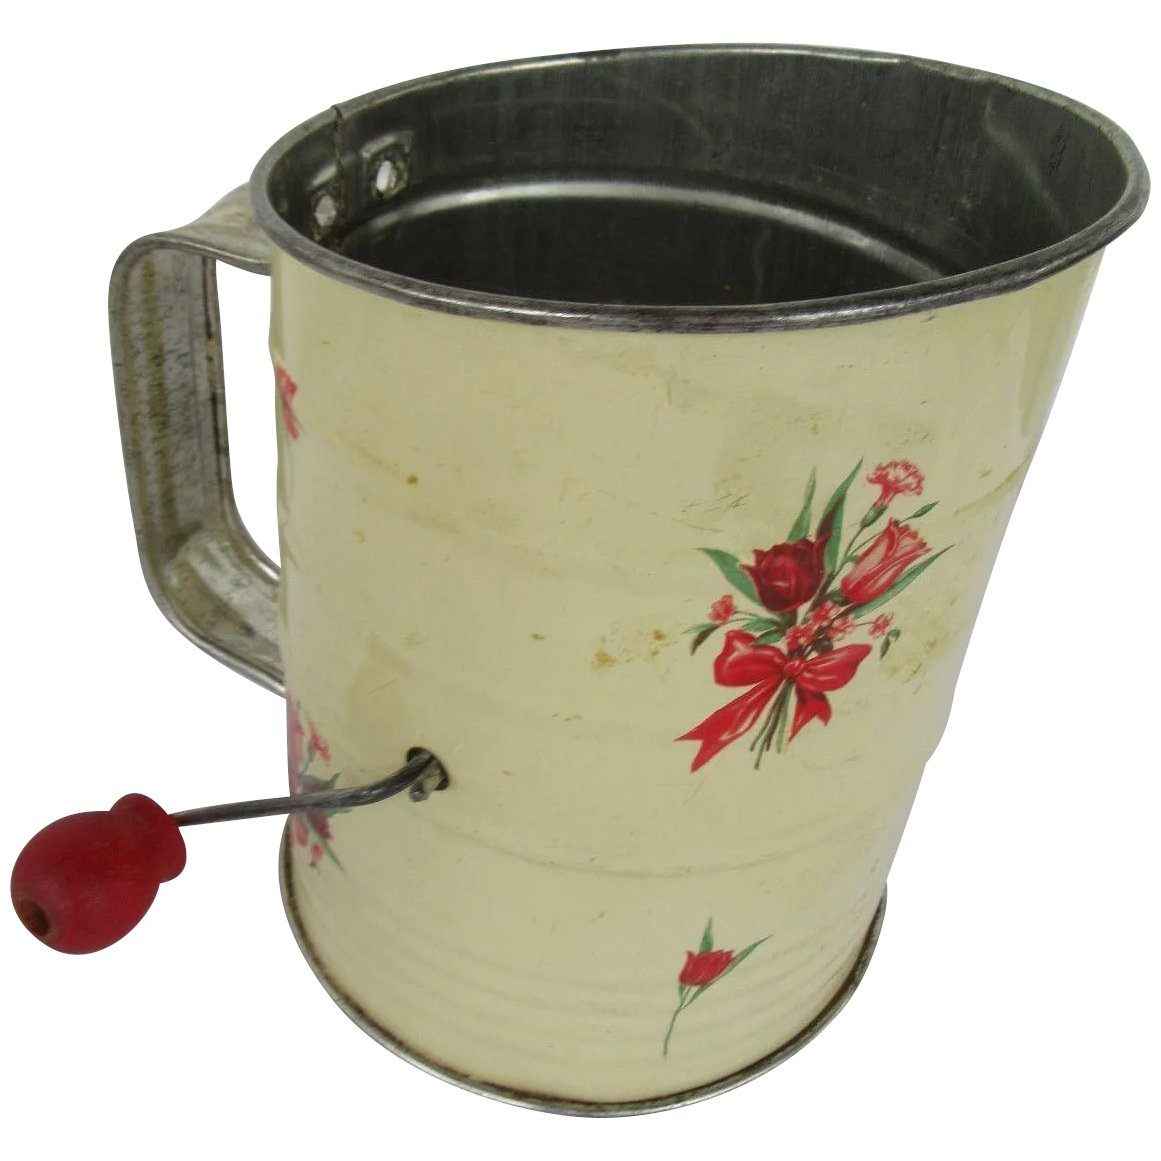 Vintage Flour Sifter With Red Handle And Tulip Design